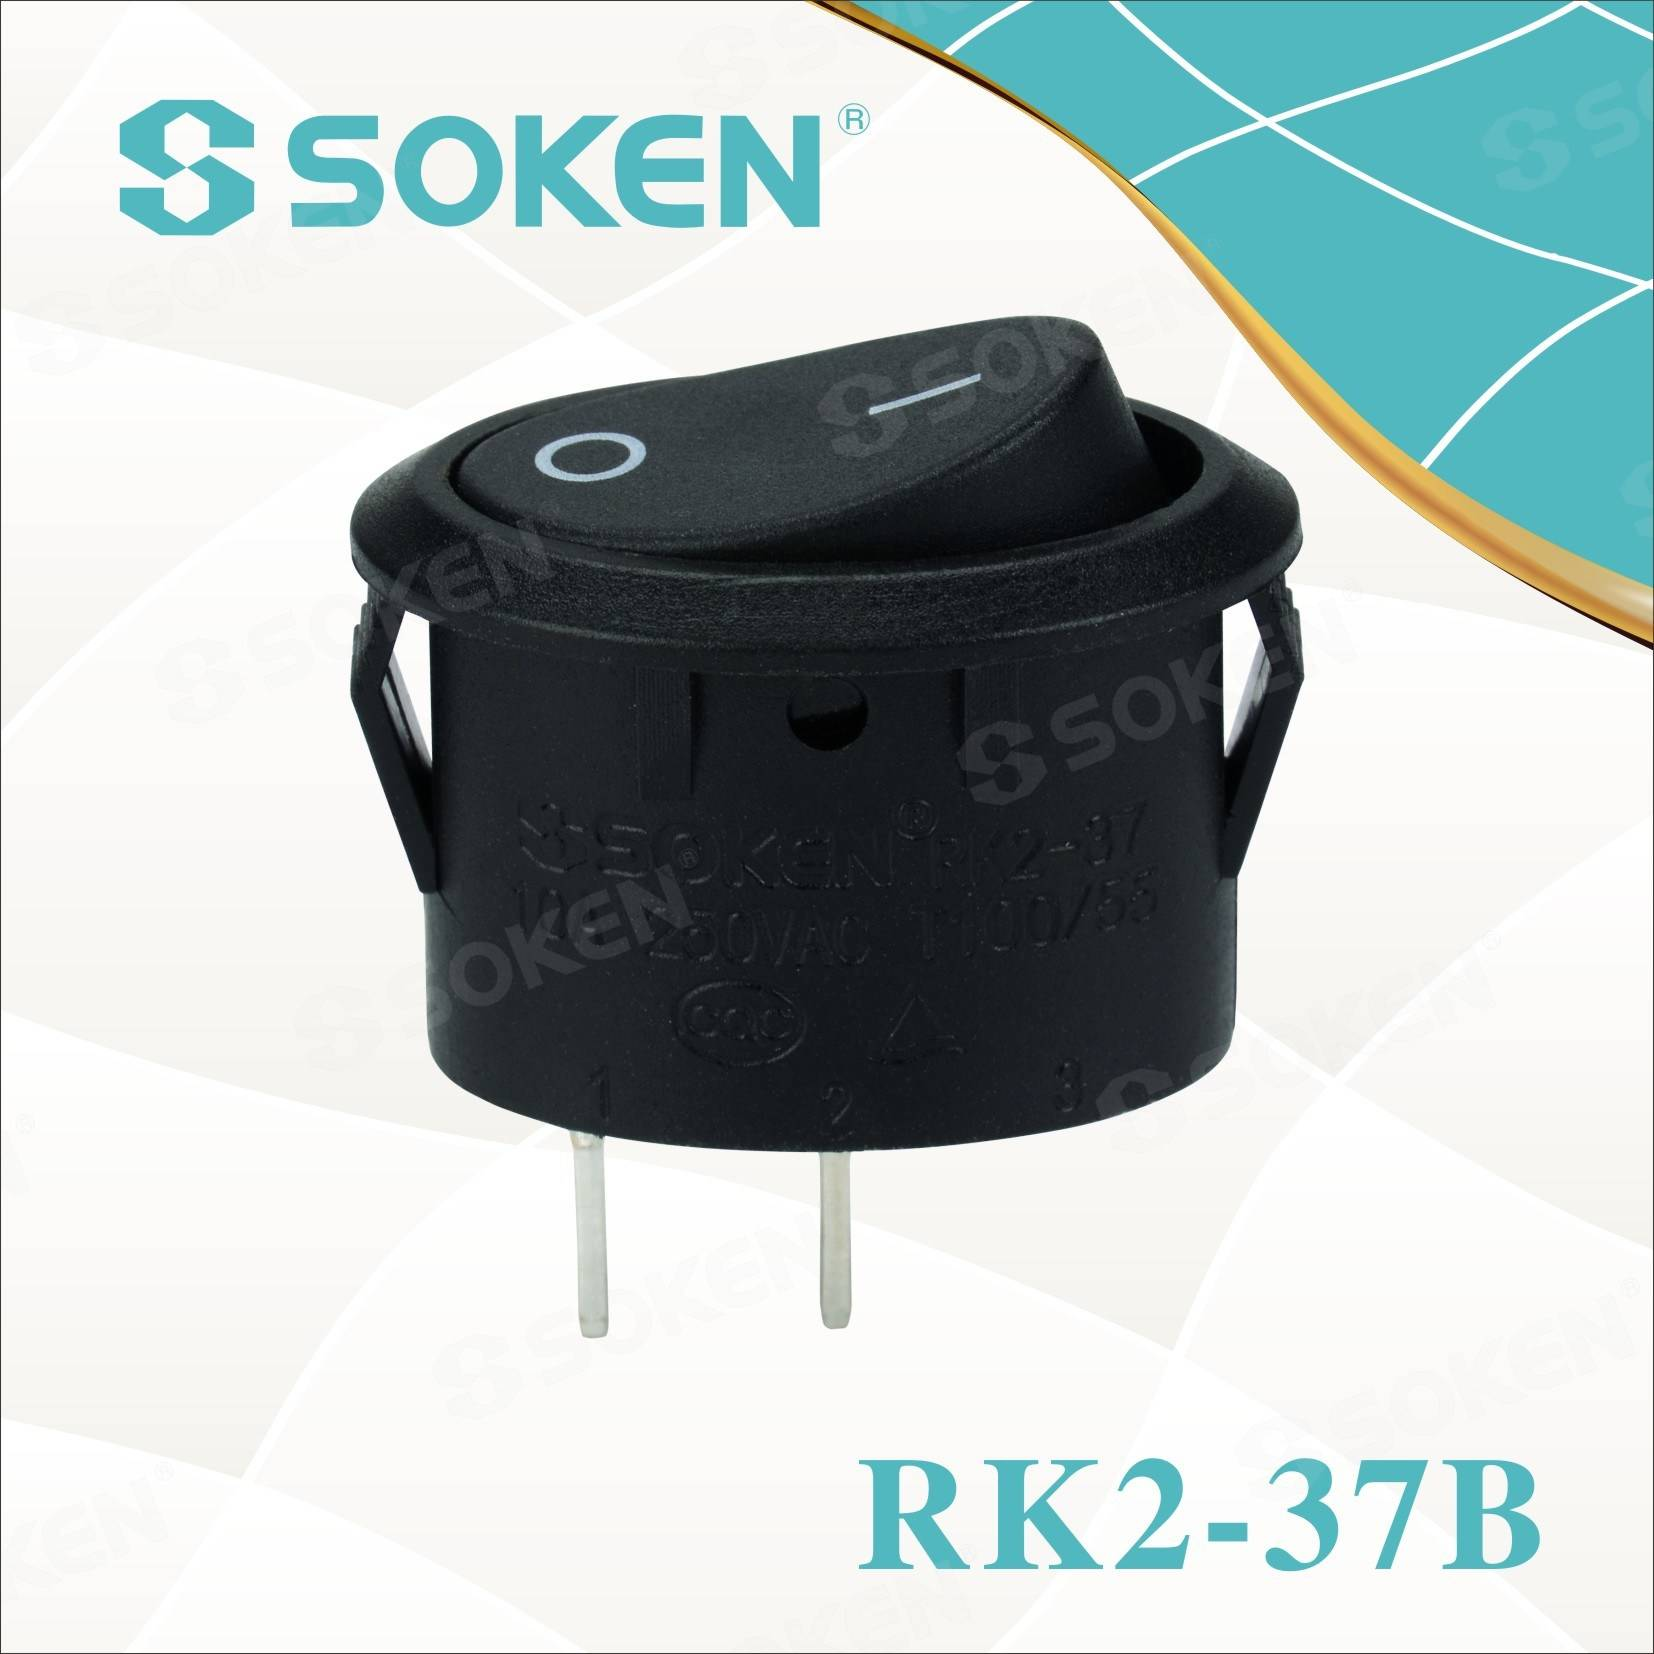 Soken Rk2-37b rookaha Switch